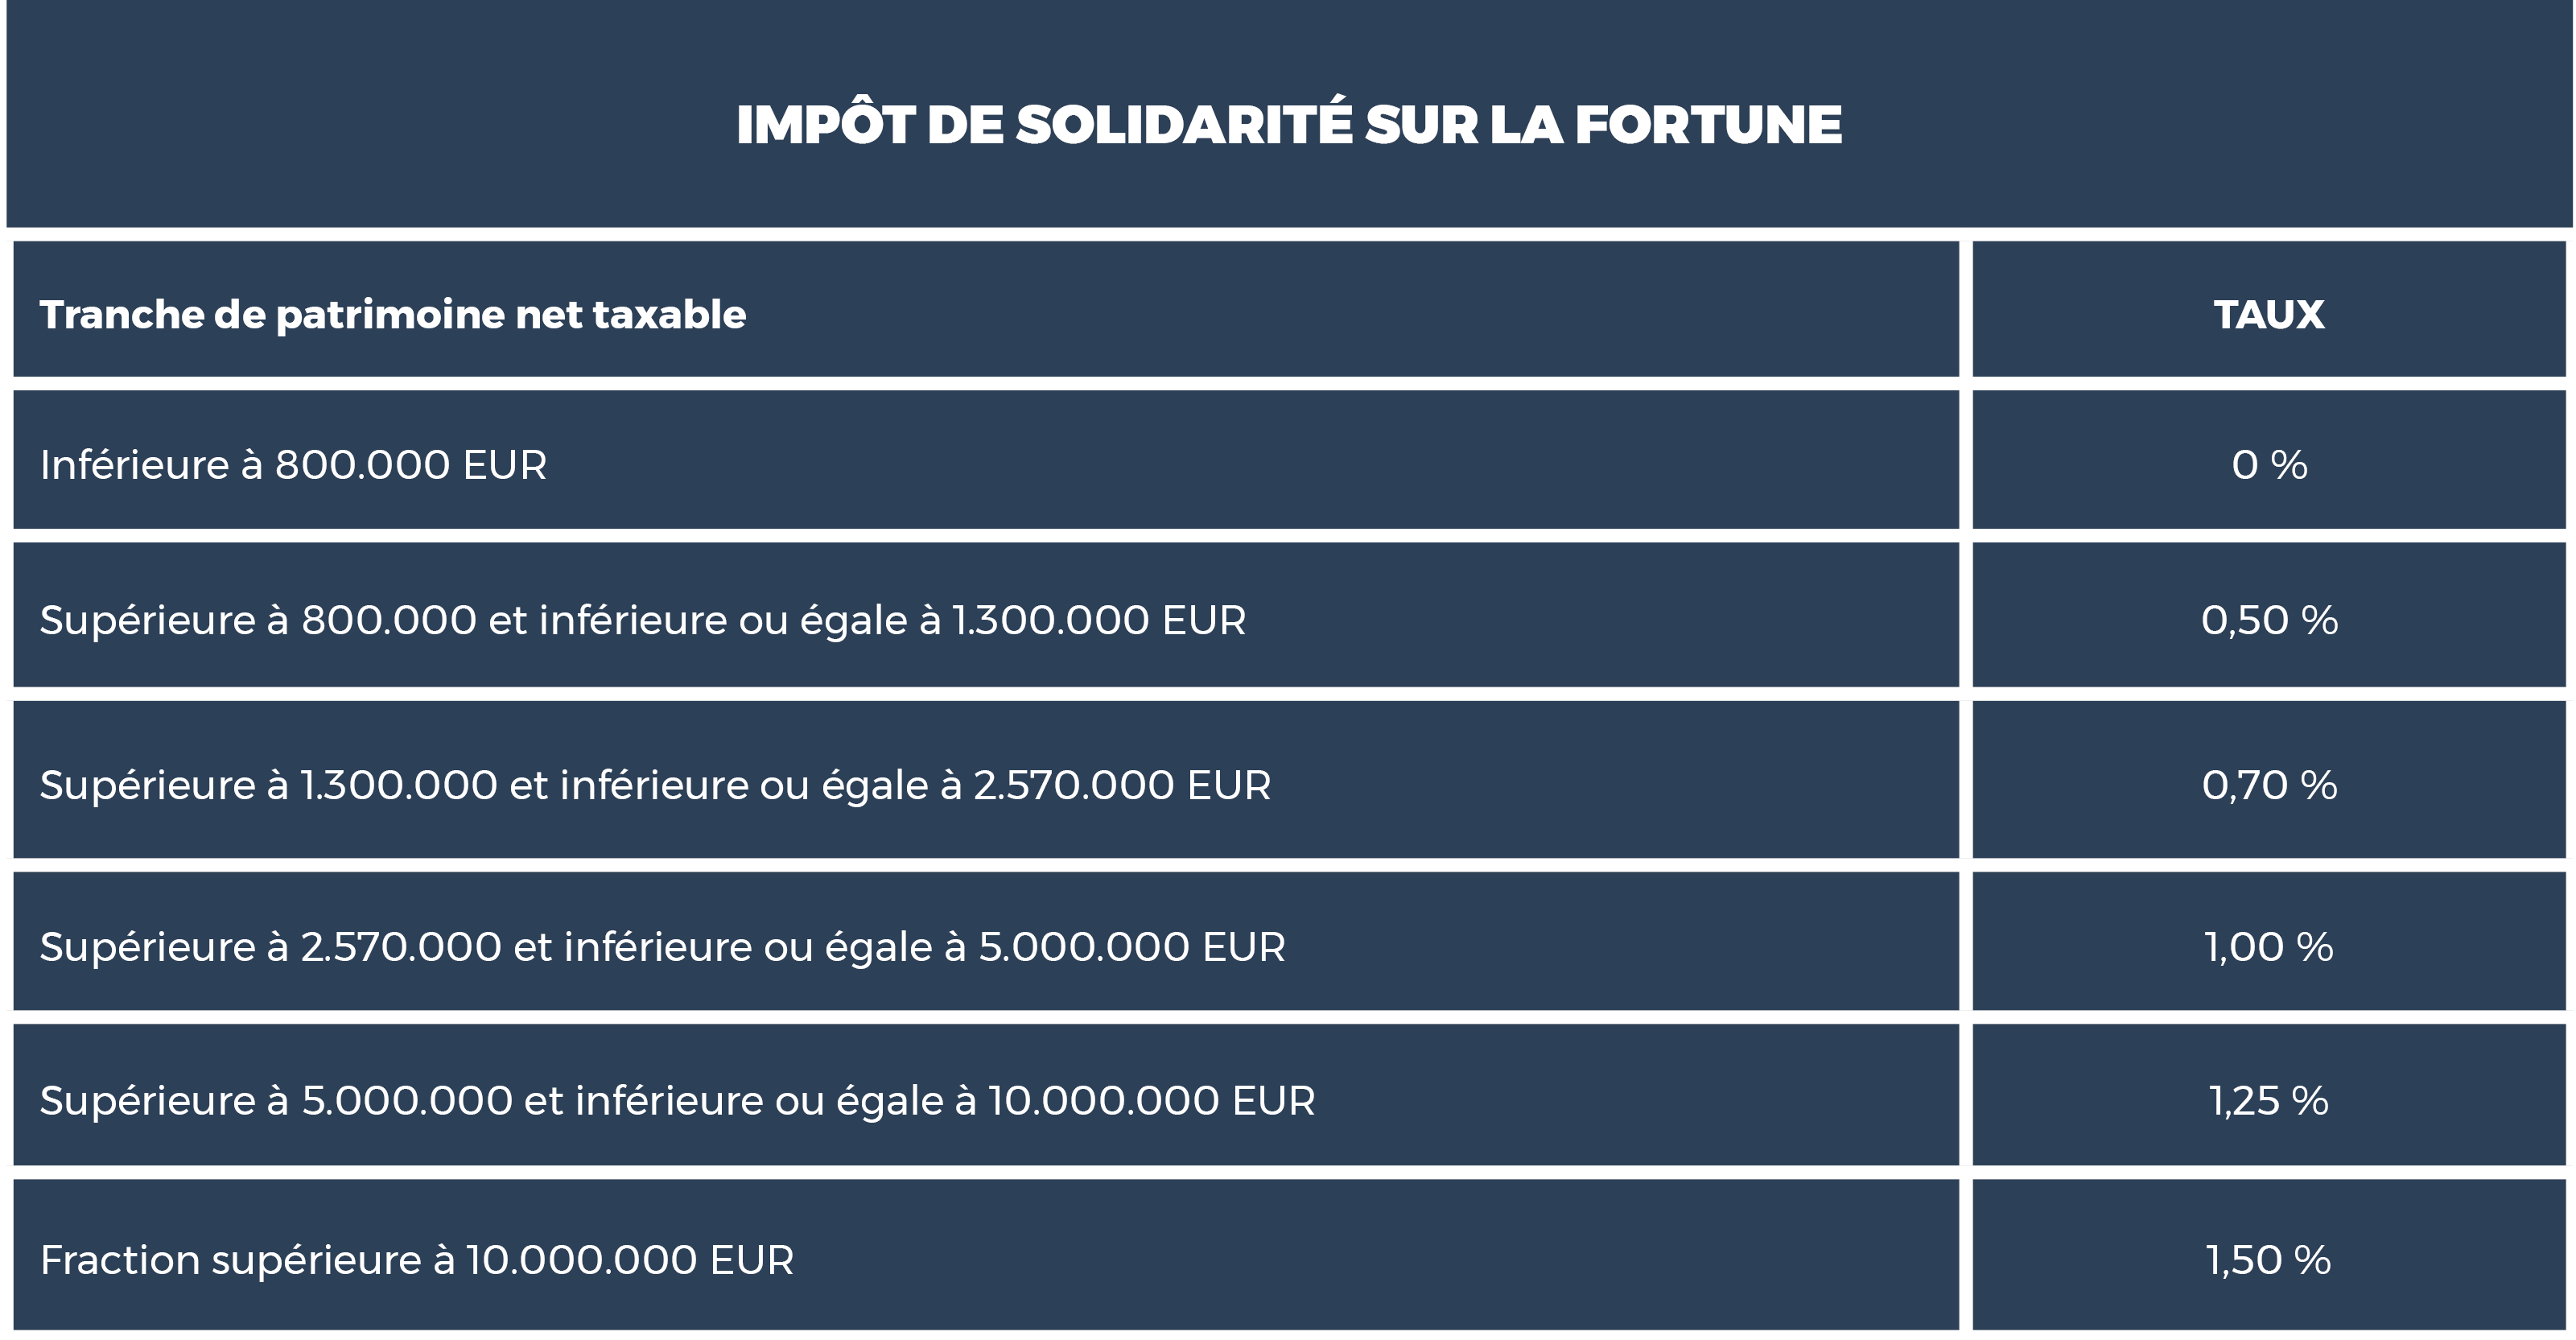 Comment se calcule IFI